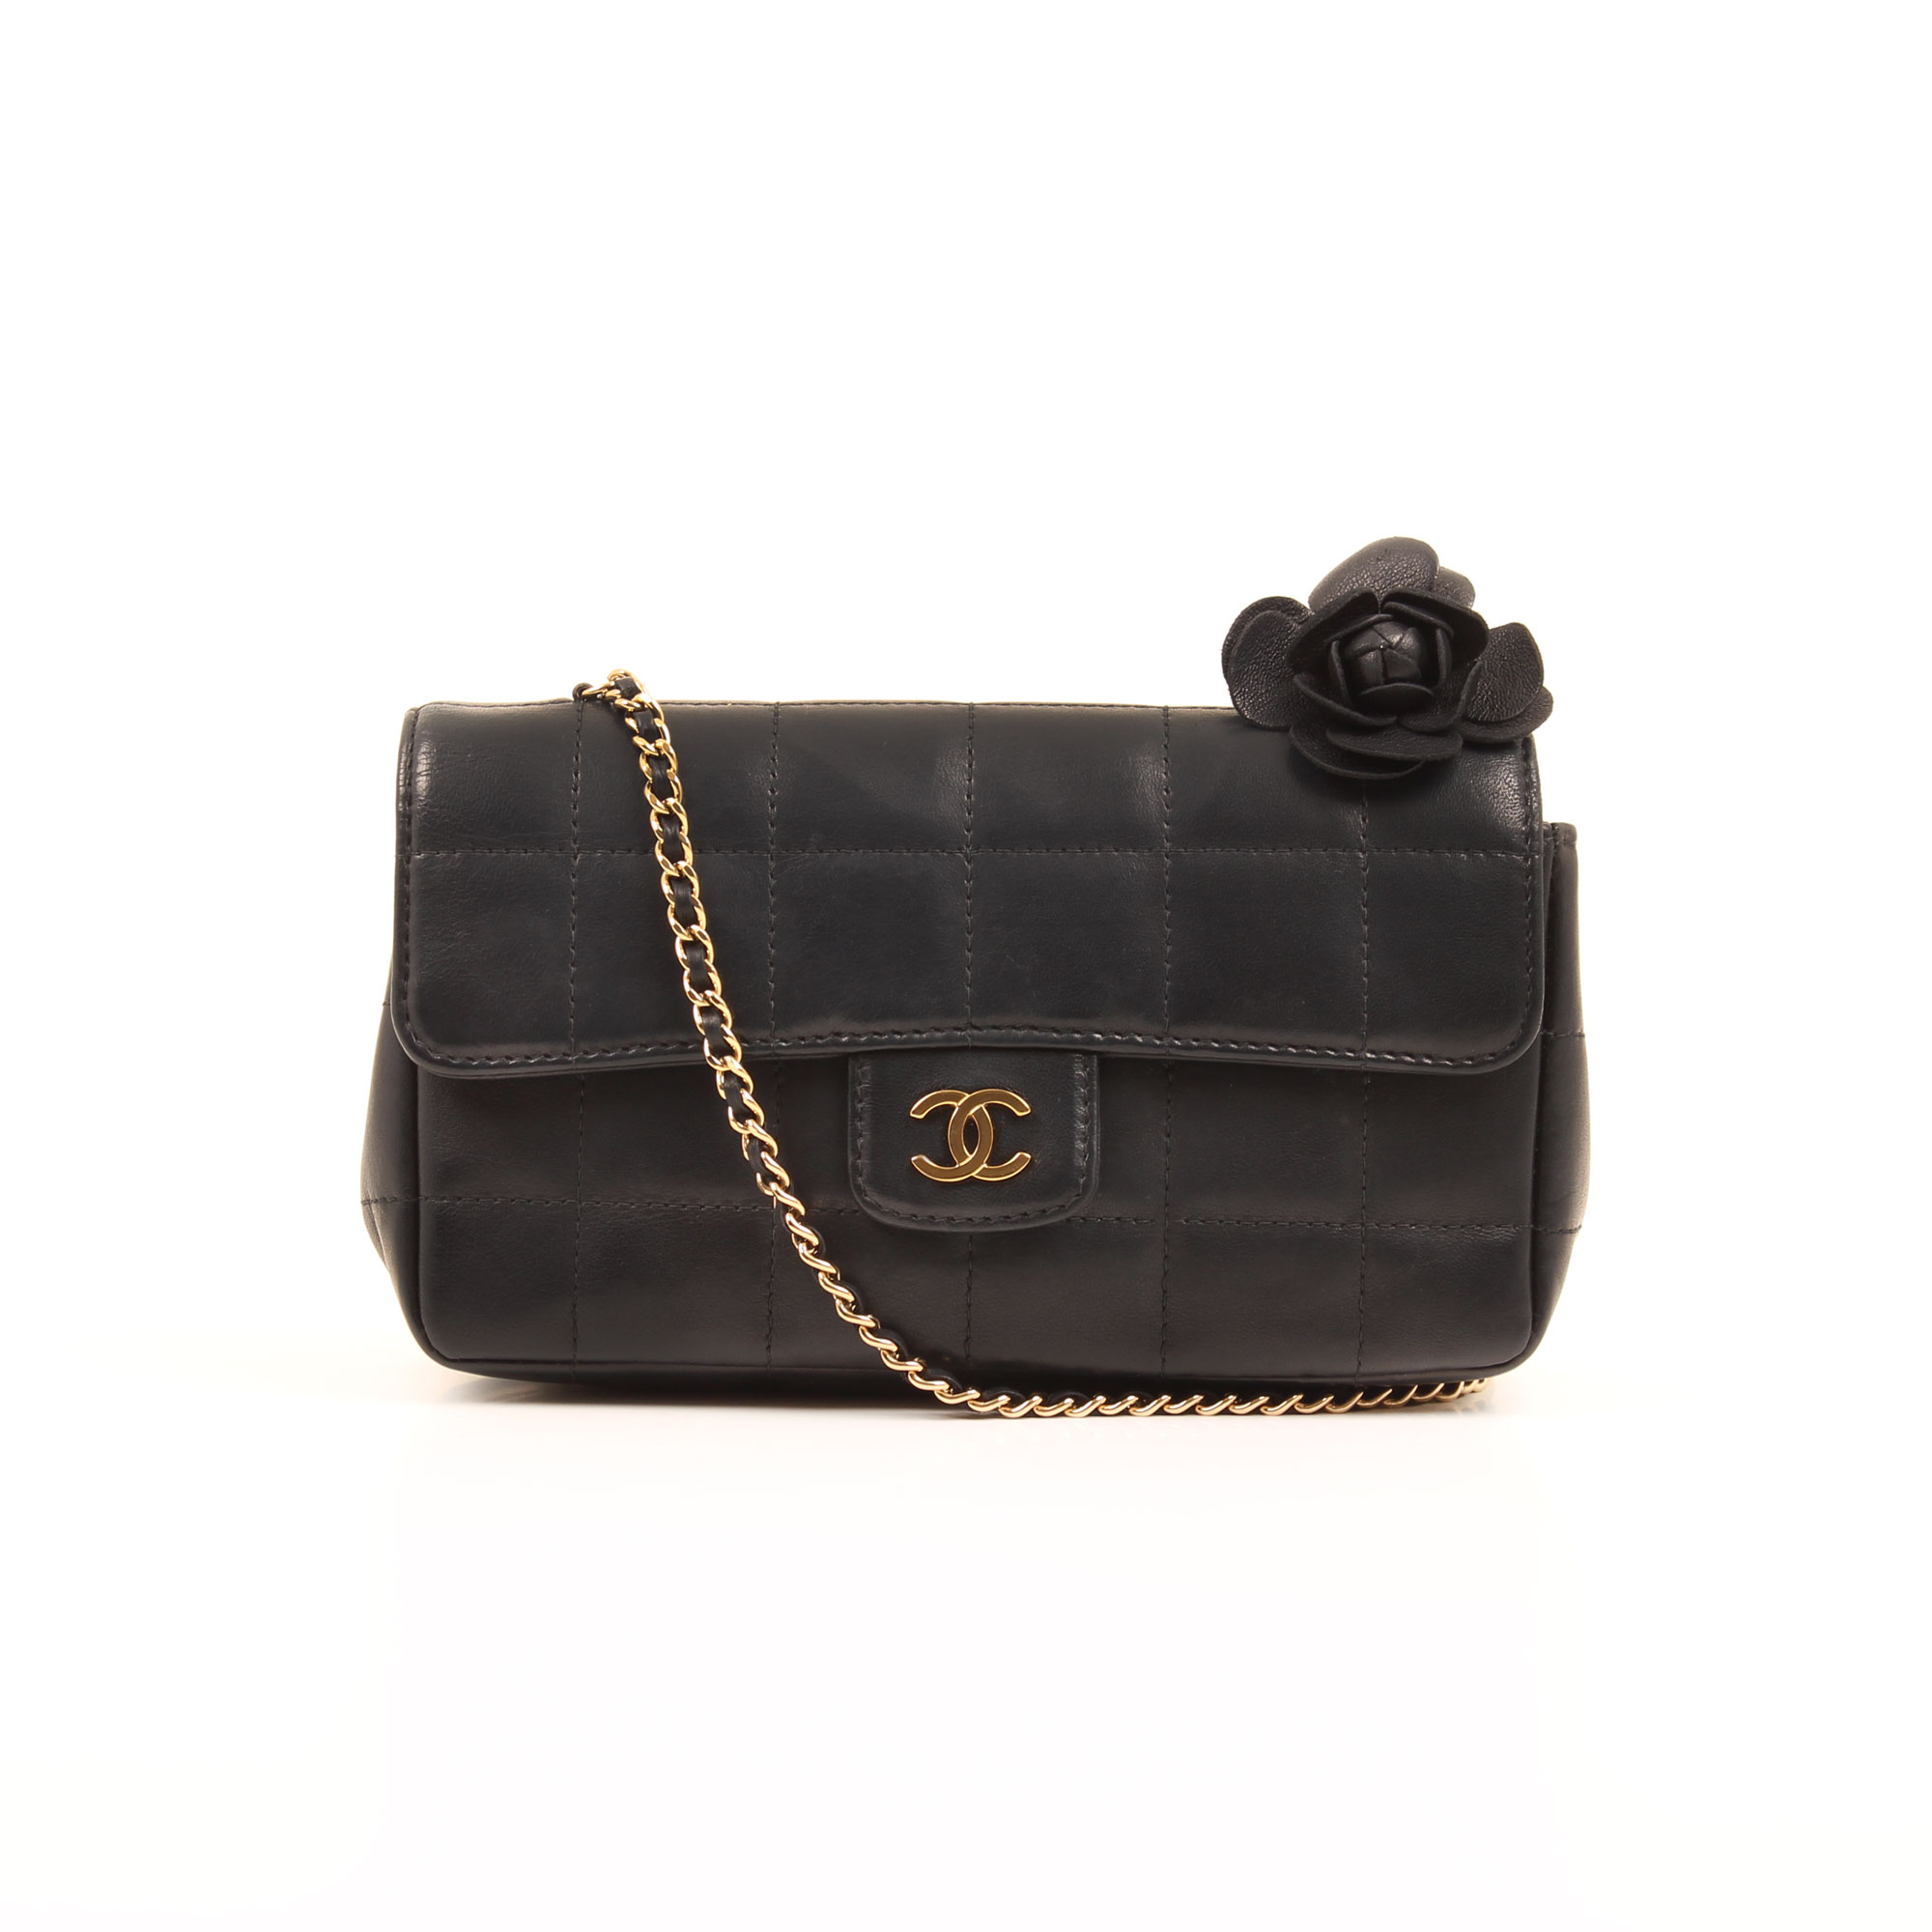 Imagen frontal del bolso chanel mini crossbody chocolate bar navy blue camelia